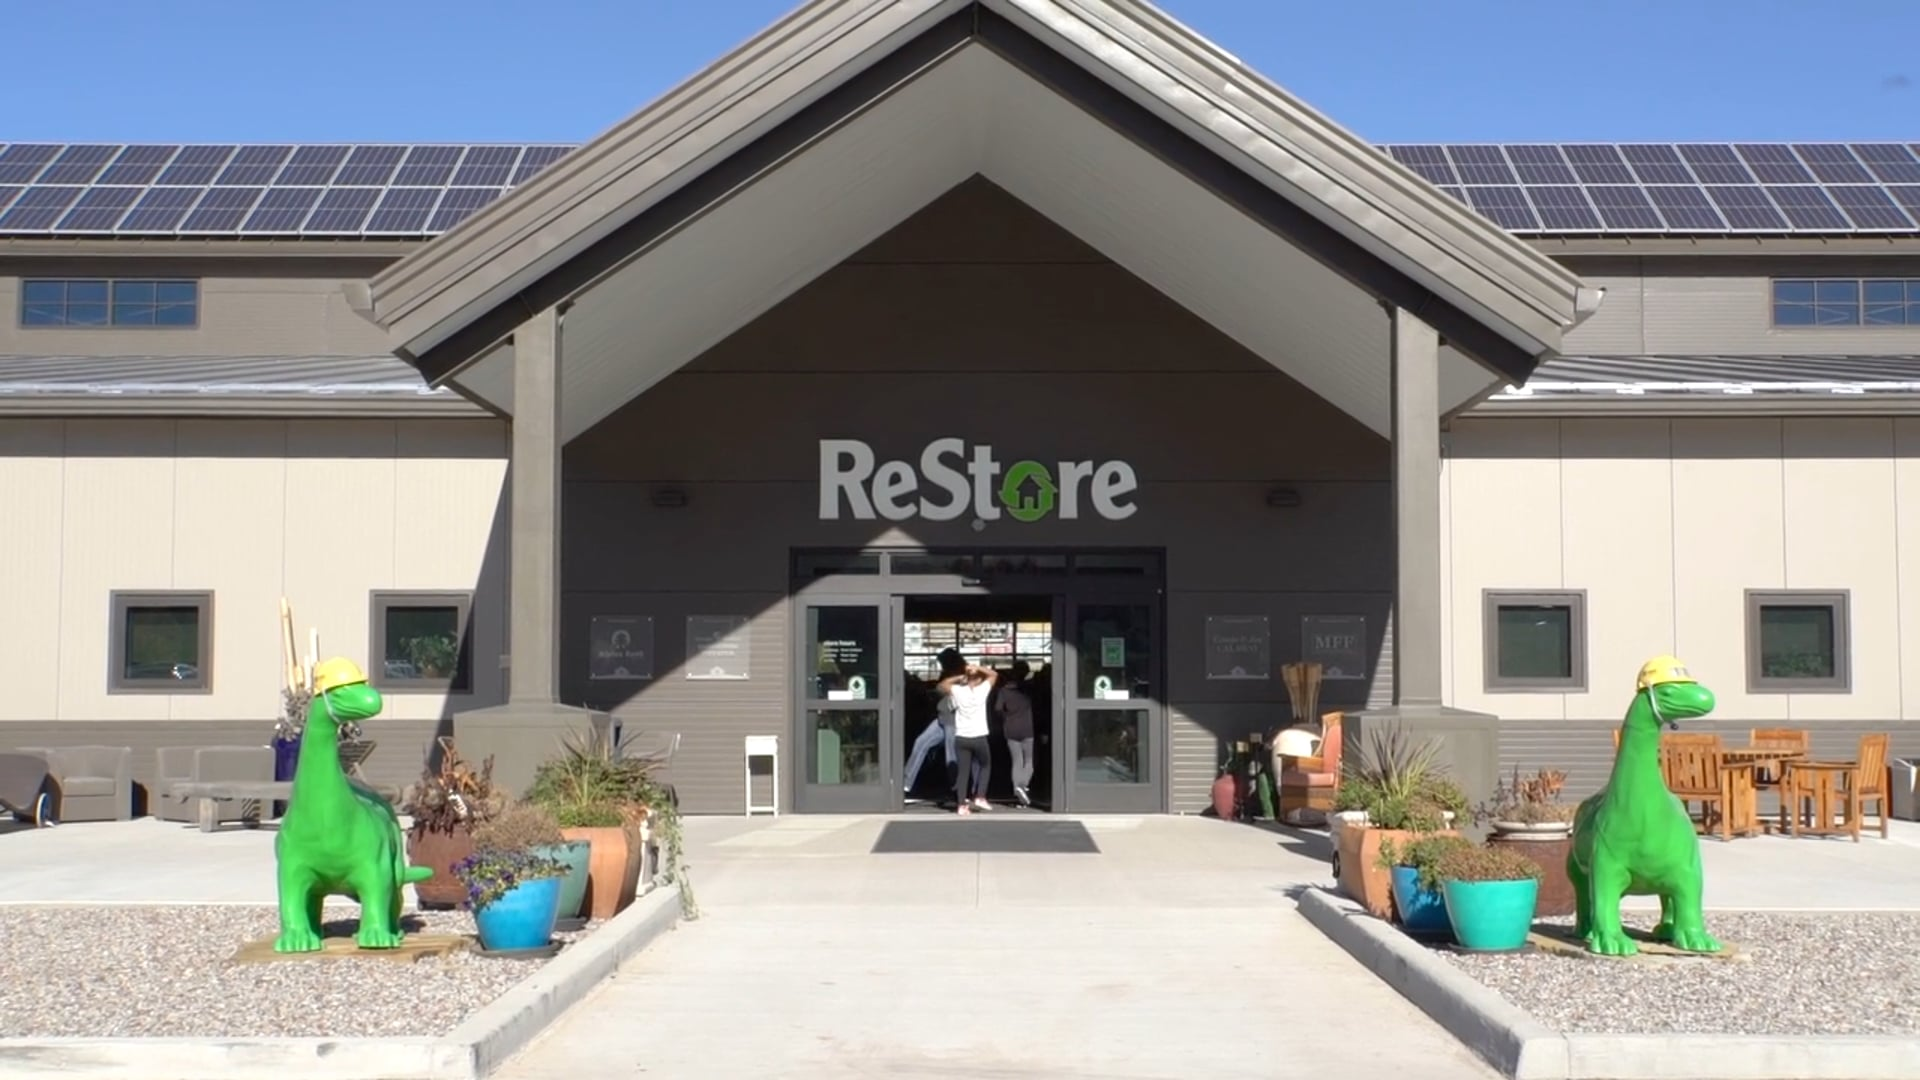 First Nationwide Payments & Habitat ReStore Partnership